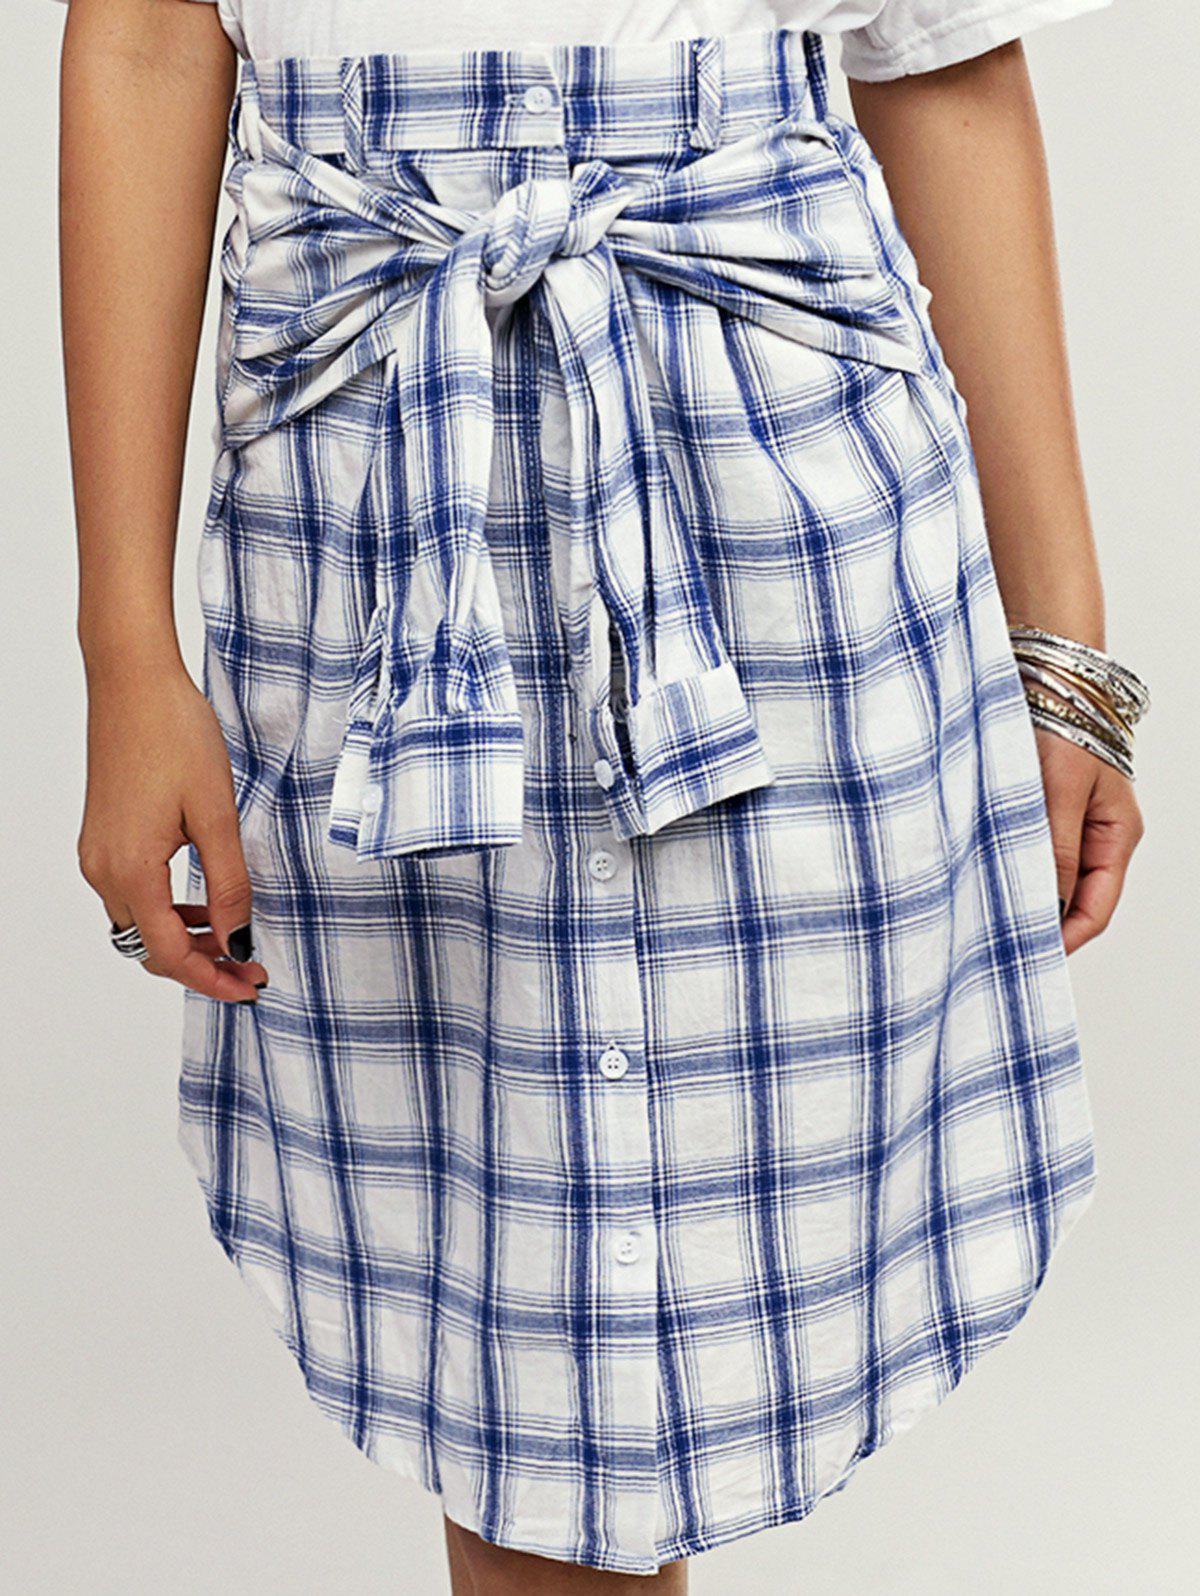 Stylish Button Front Plaid Curved Hem Women's Skirt - BLUE ONE SIZE(FIT SIZE XS TO M)